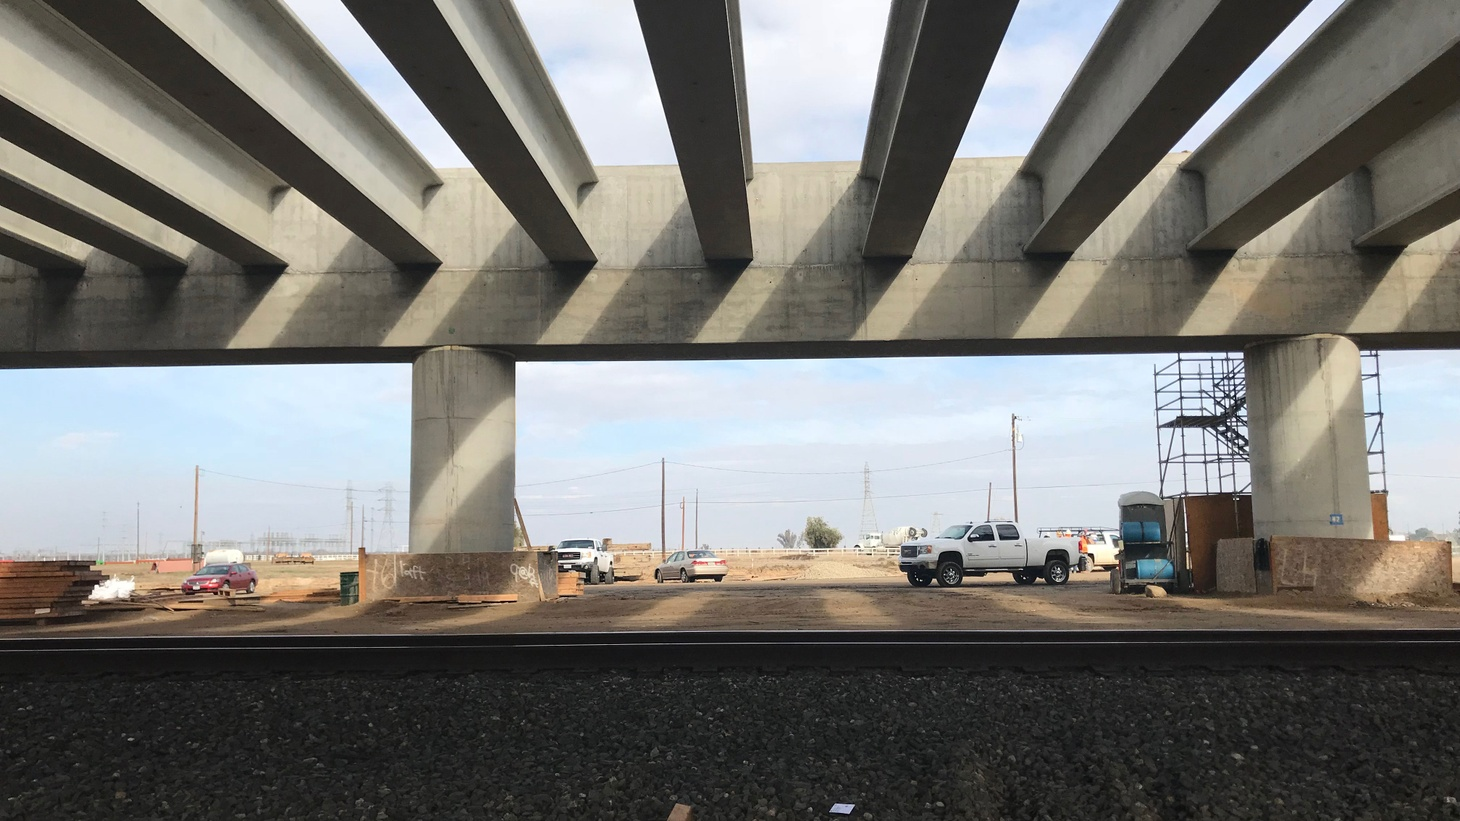 California's biggest infrastructure project is a high-speed rail network that would connect San Francisco, the Central Valley and Los Angeles, bridging communities cut off by the state's difficult geography.